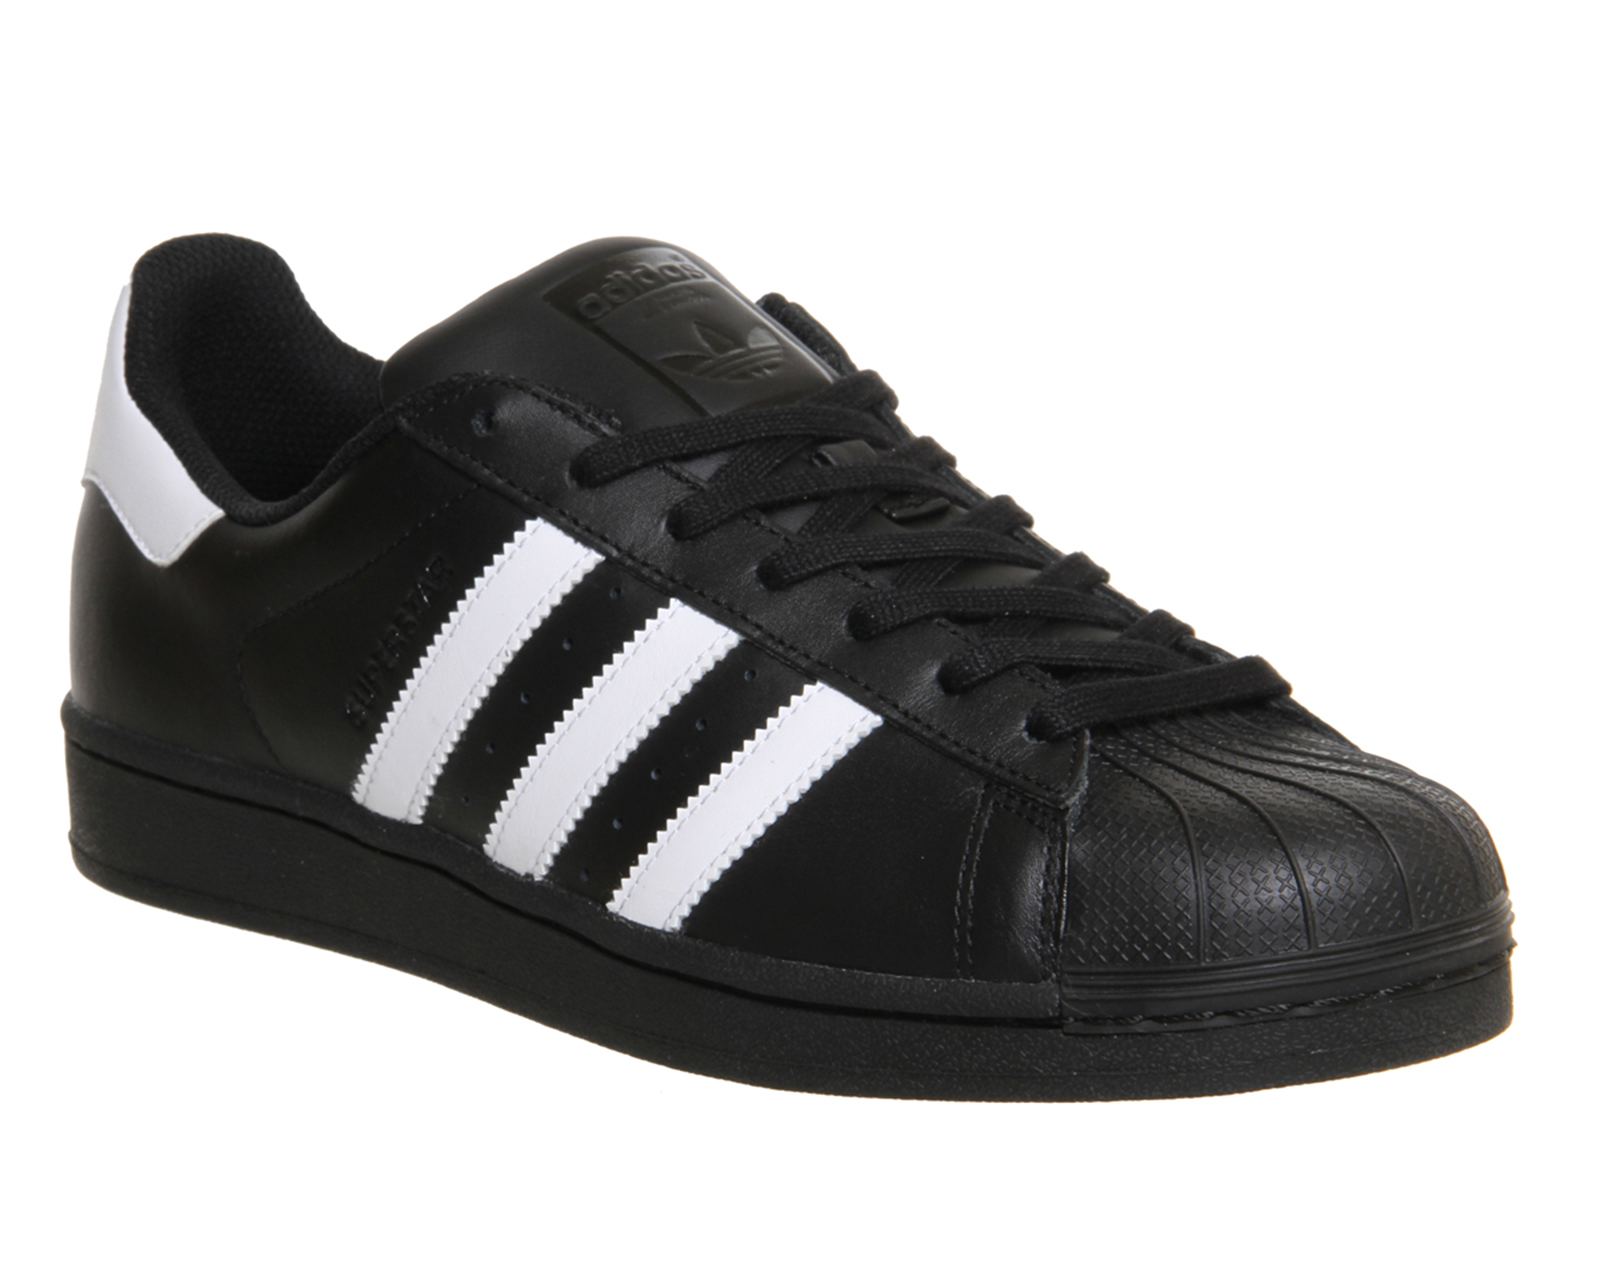 Adidas Trainers Sale Ebay